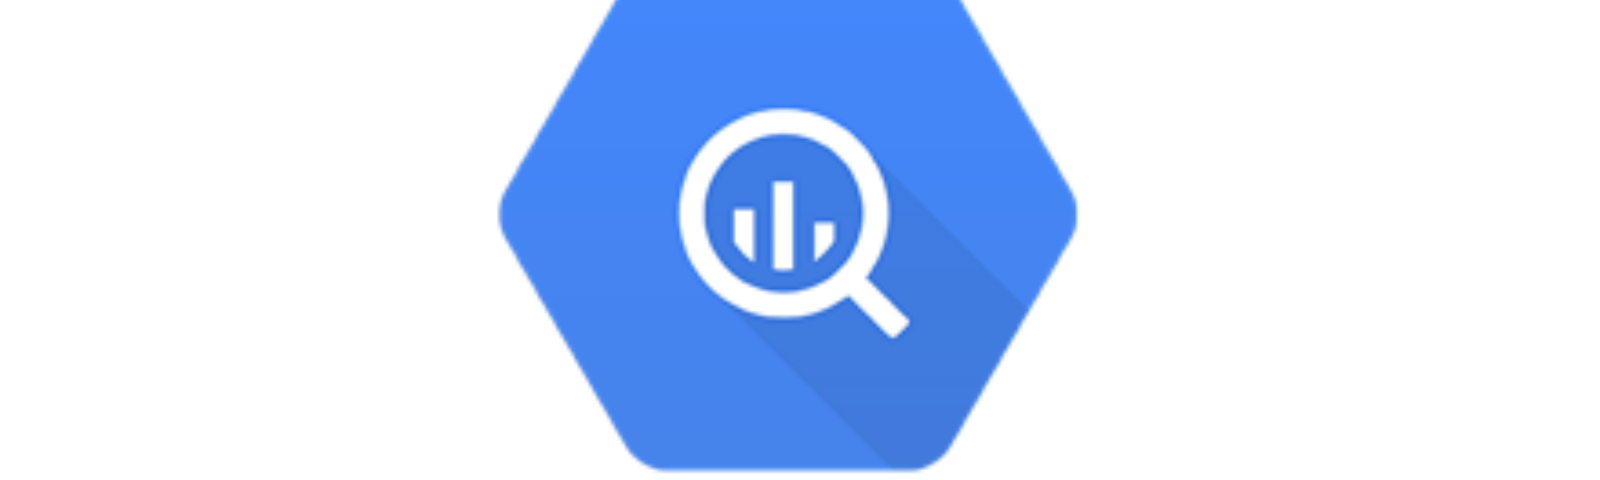 Image result for bigquery